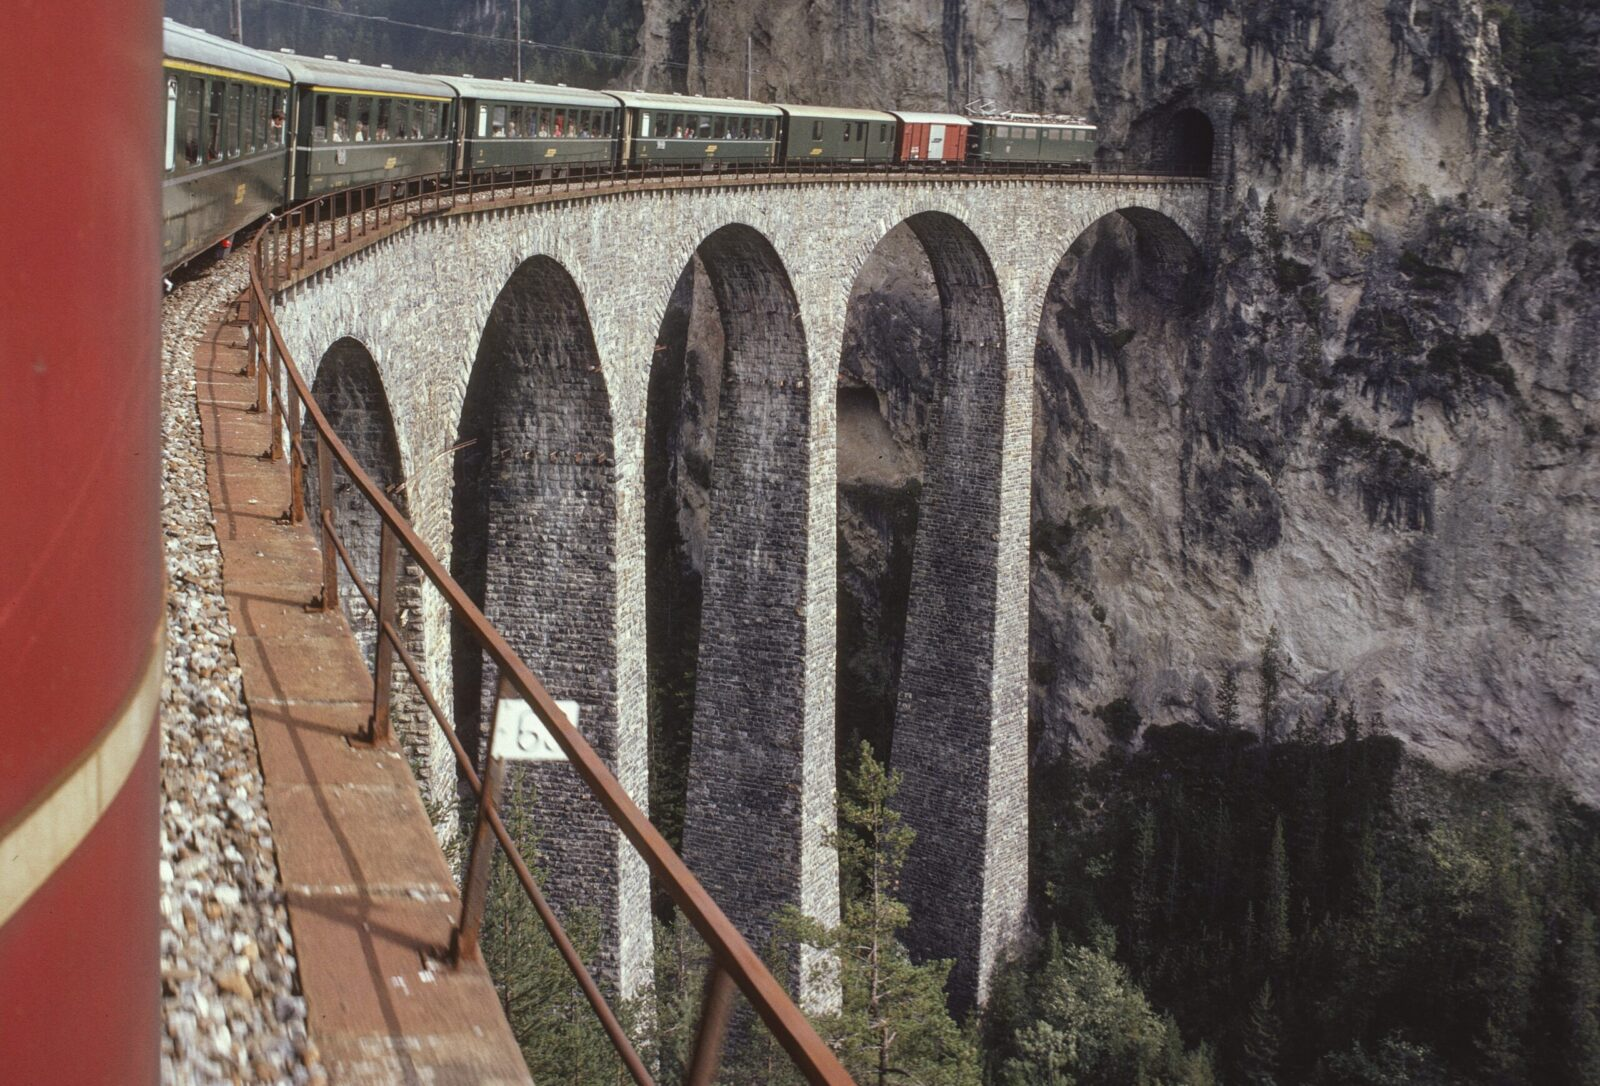 Renaissance of stone-arch bridges: the Landwasser Viaduct near Filisur in the canton of Graubünden is part of the famous Albula line of the Rhaetian Railway, which was completed in 1903.